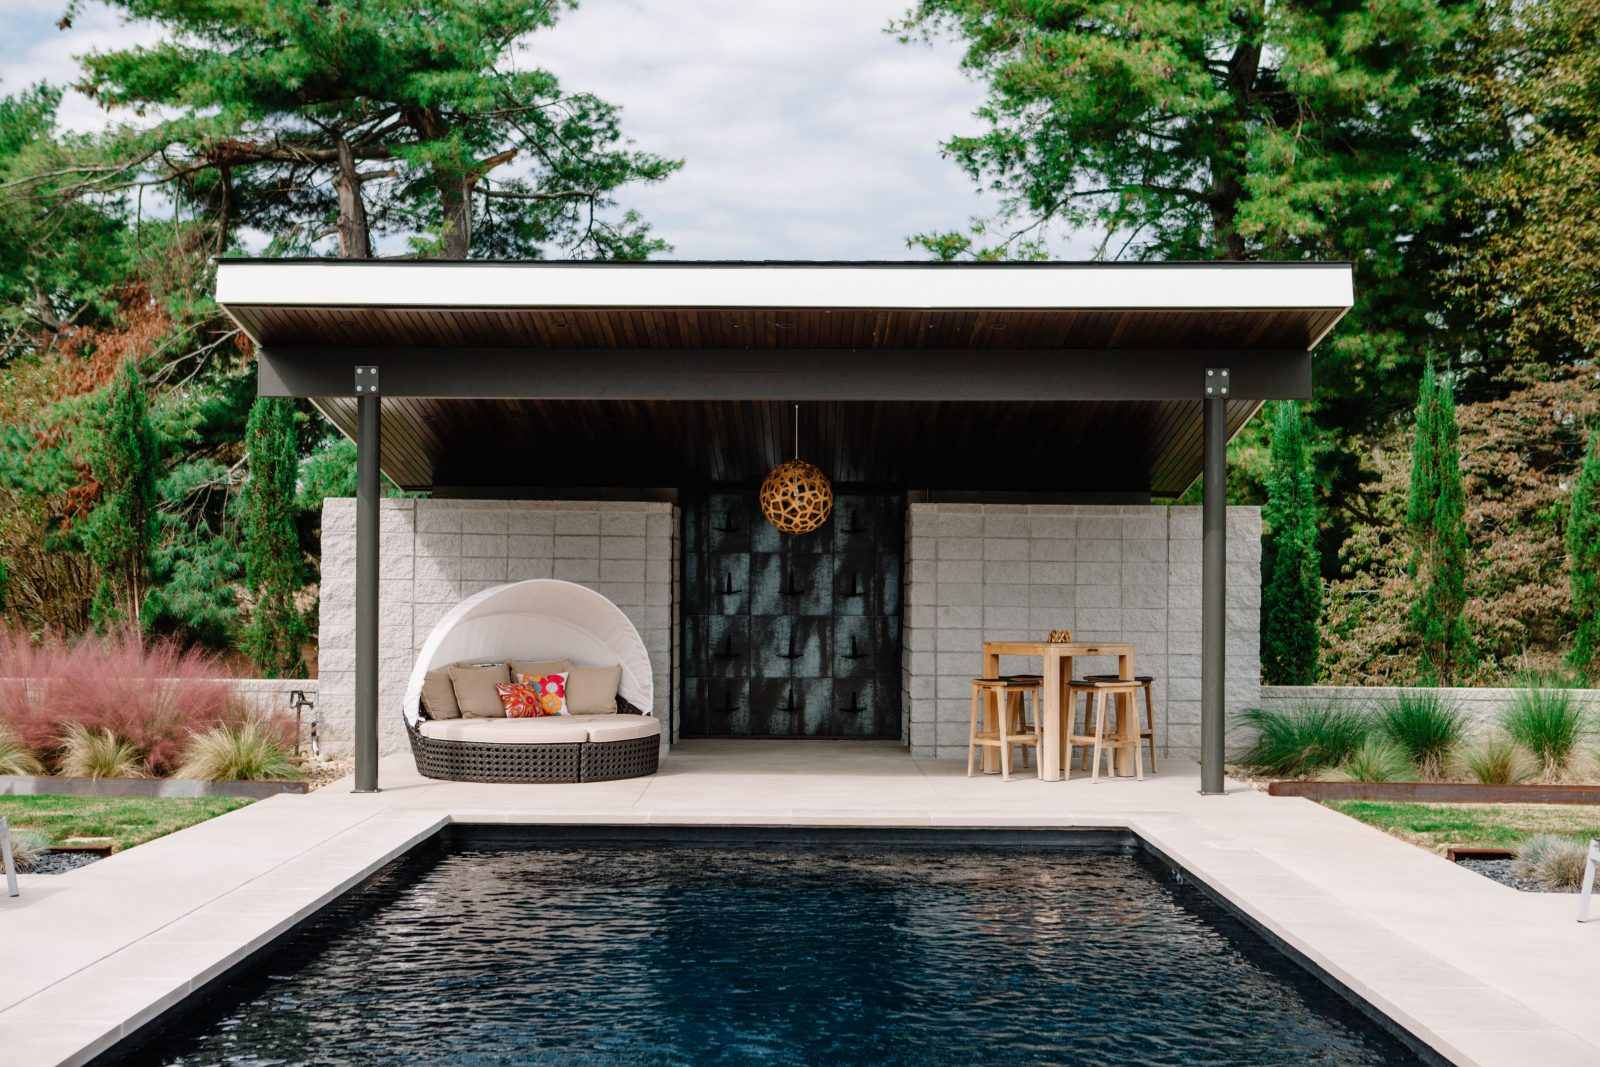 Outdoor cabana space next to a pool